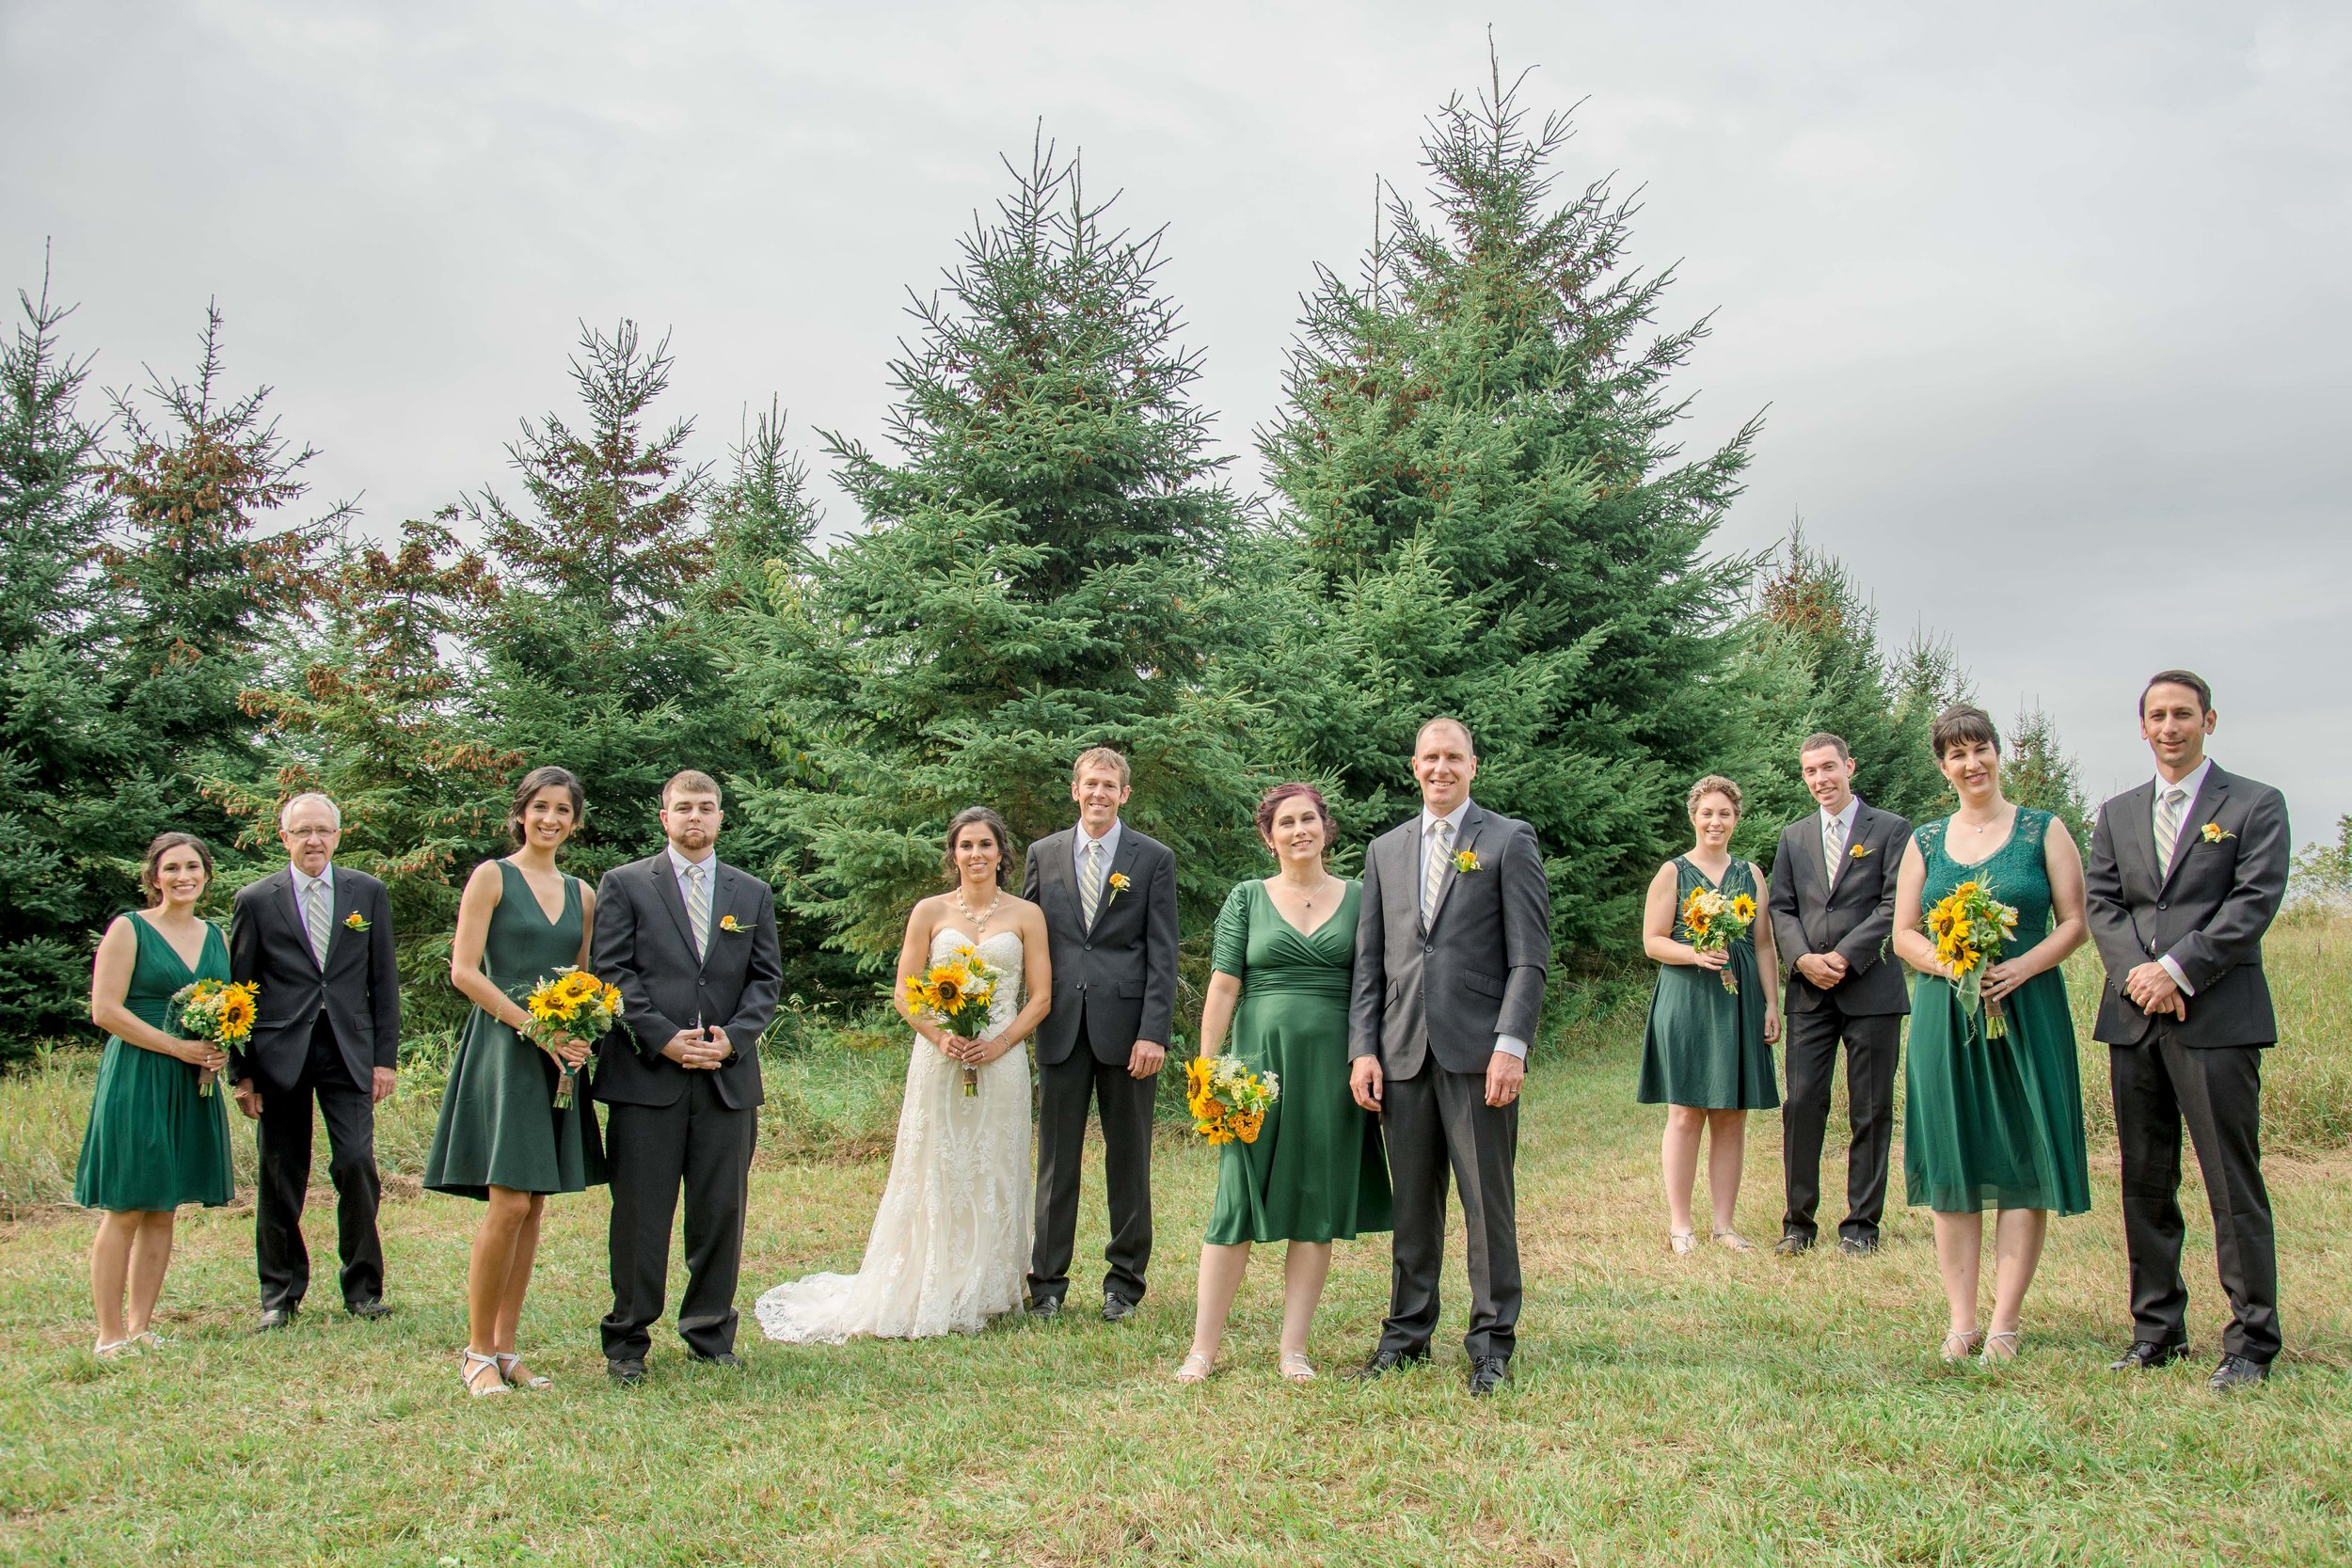 outdoor-wedding-venues-wisconsin.jpg